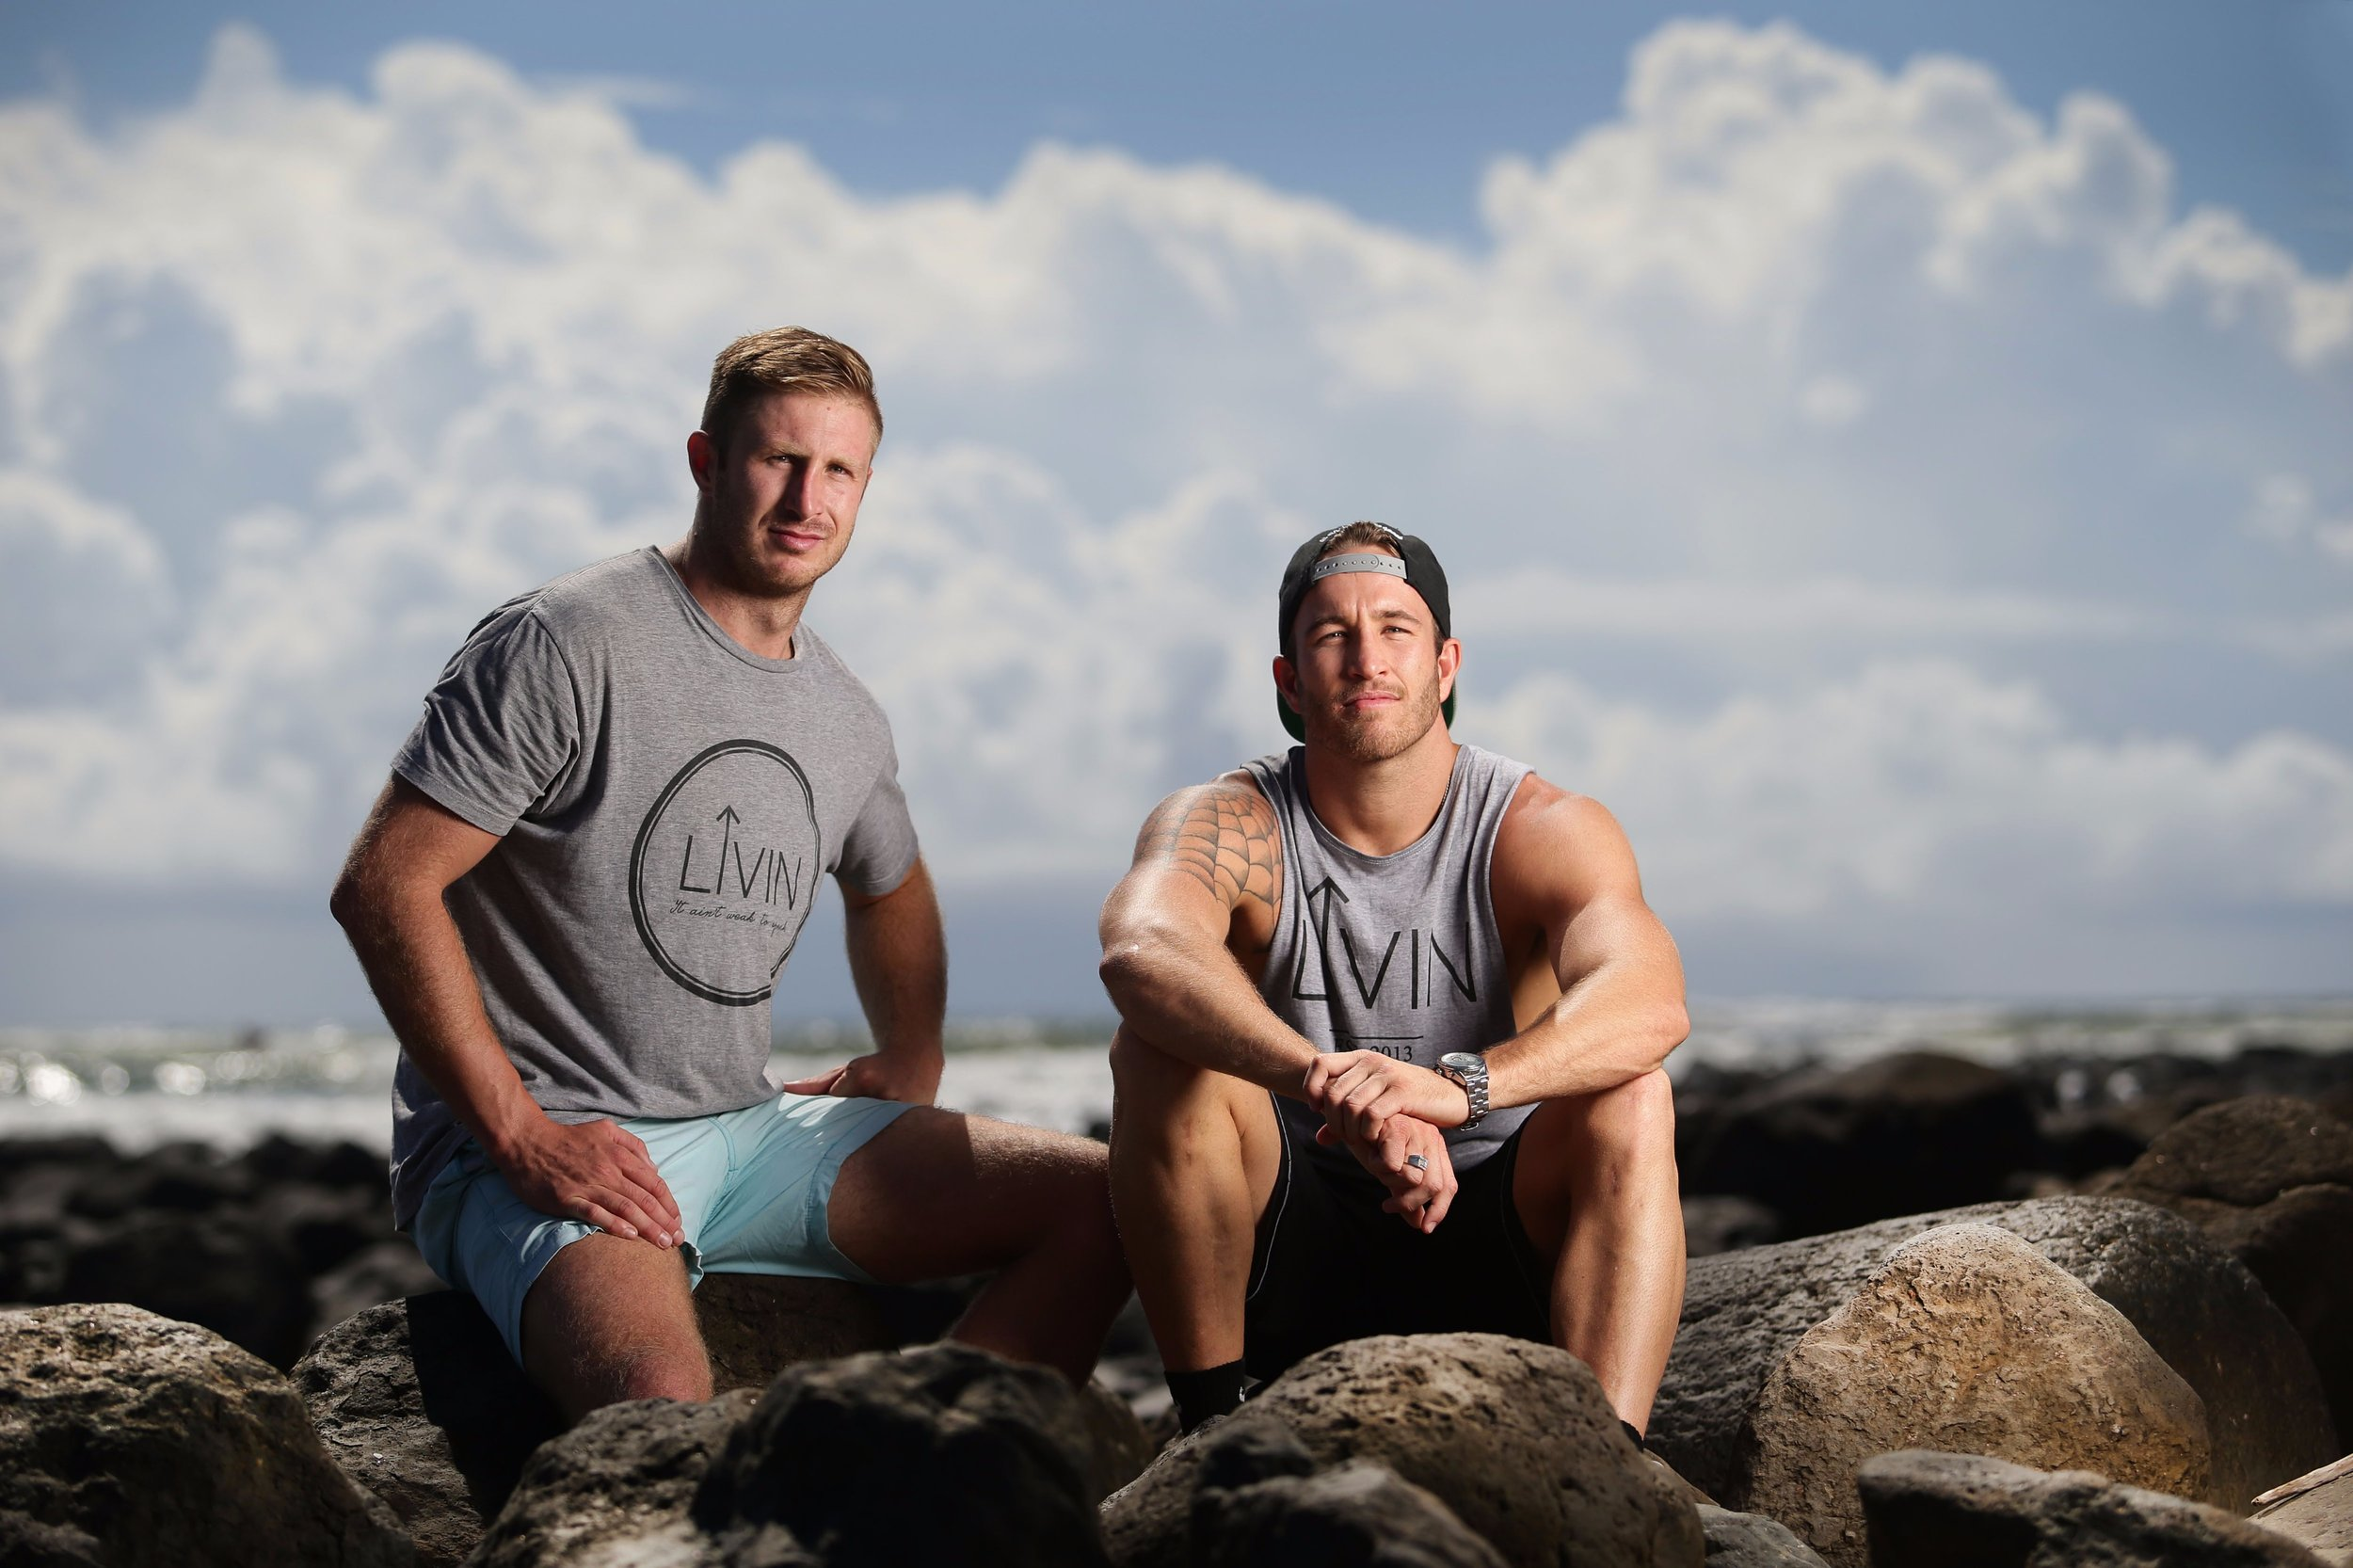 LIVIN co-founders Sam Webb and Casey Lyons